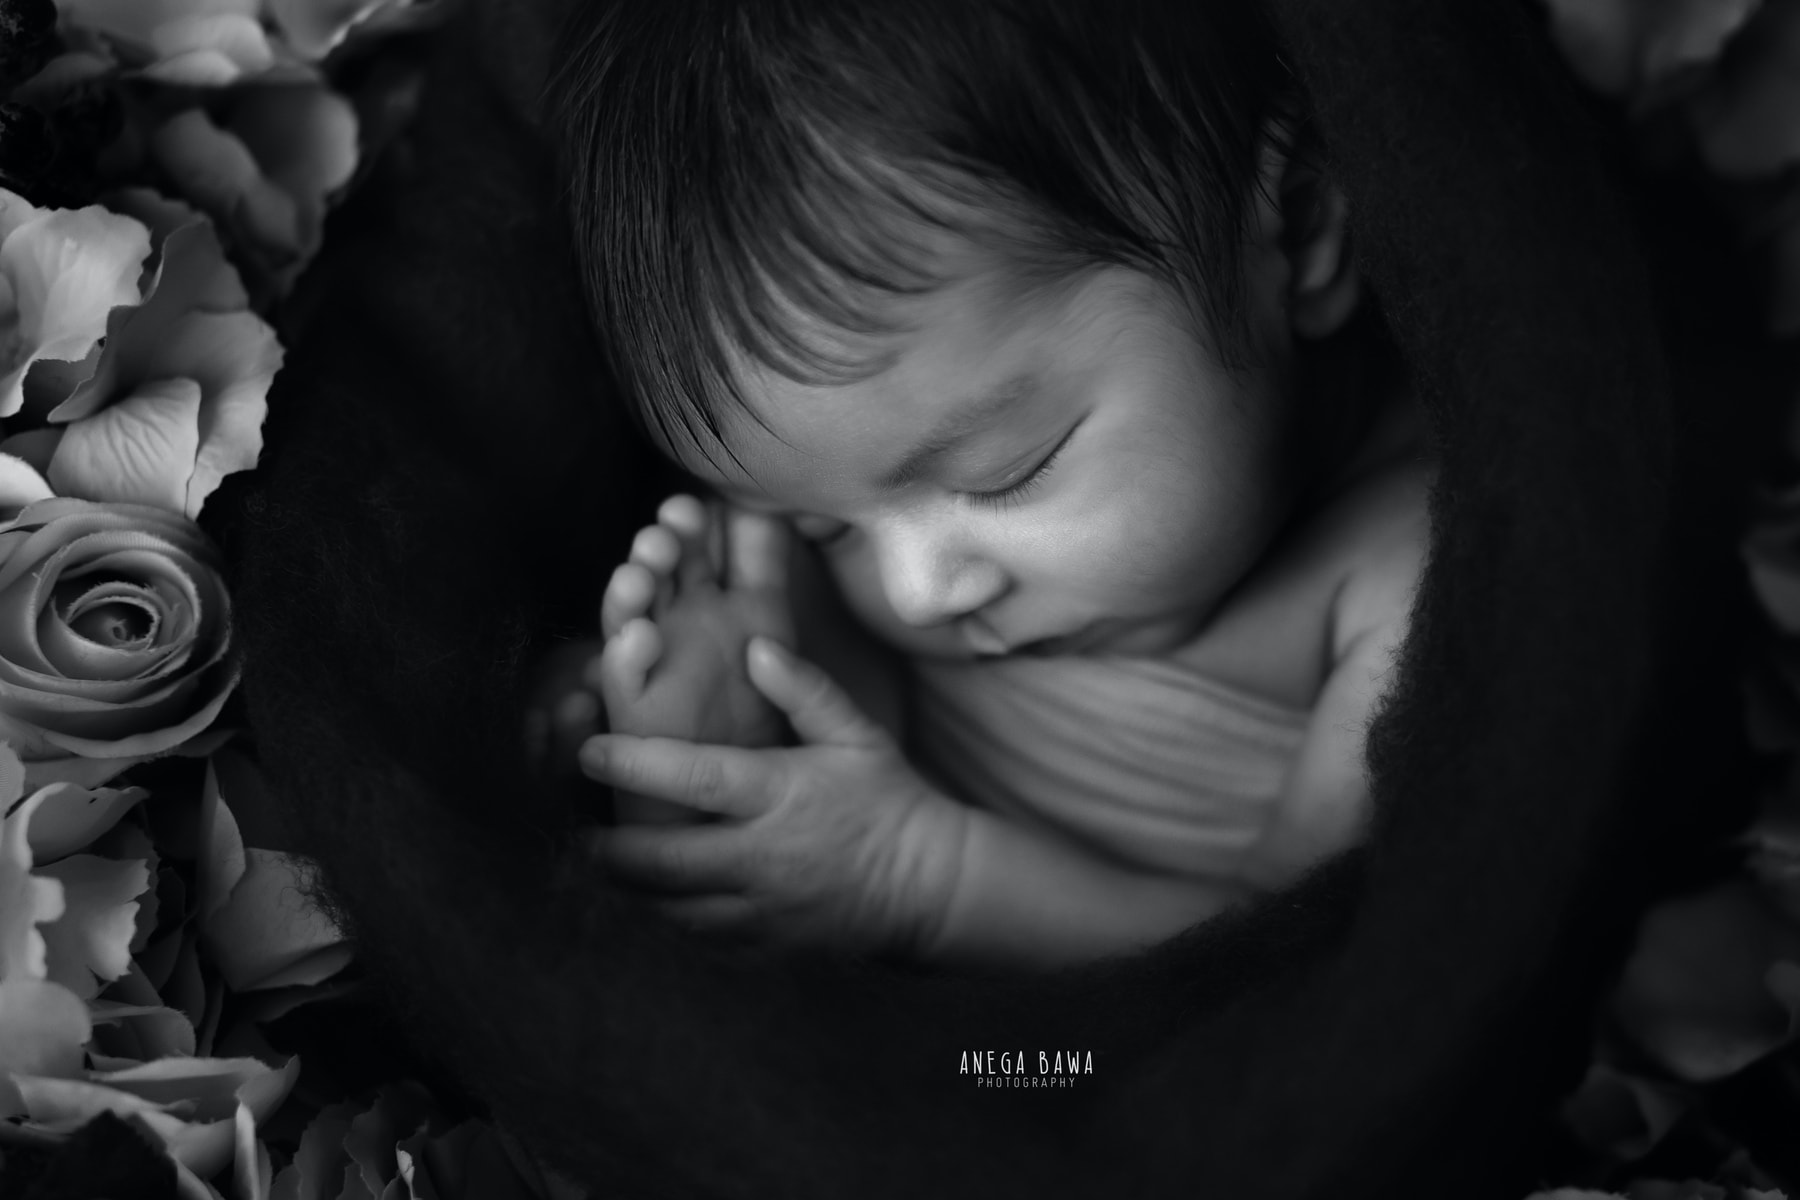 black white newborn photography delhi 20 days baby boy photoshoot gurgaon anega bawa